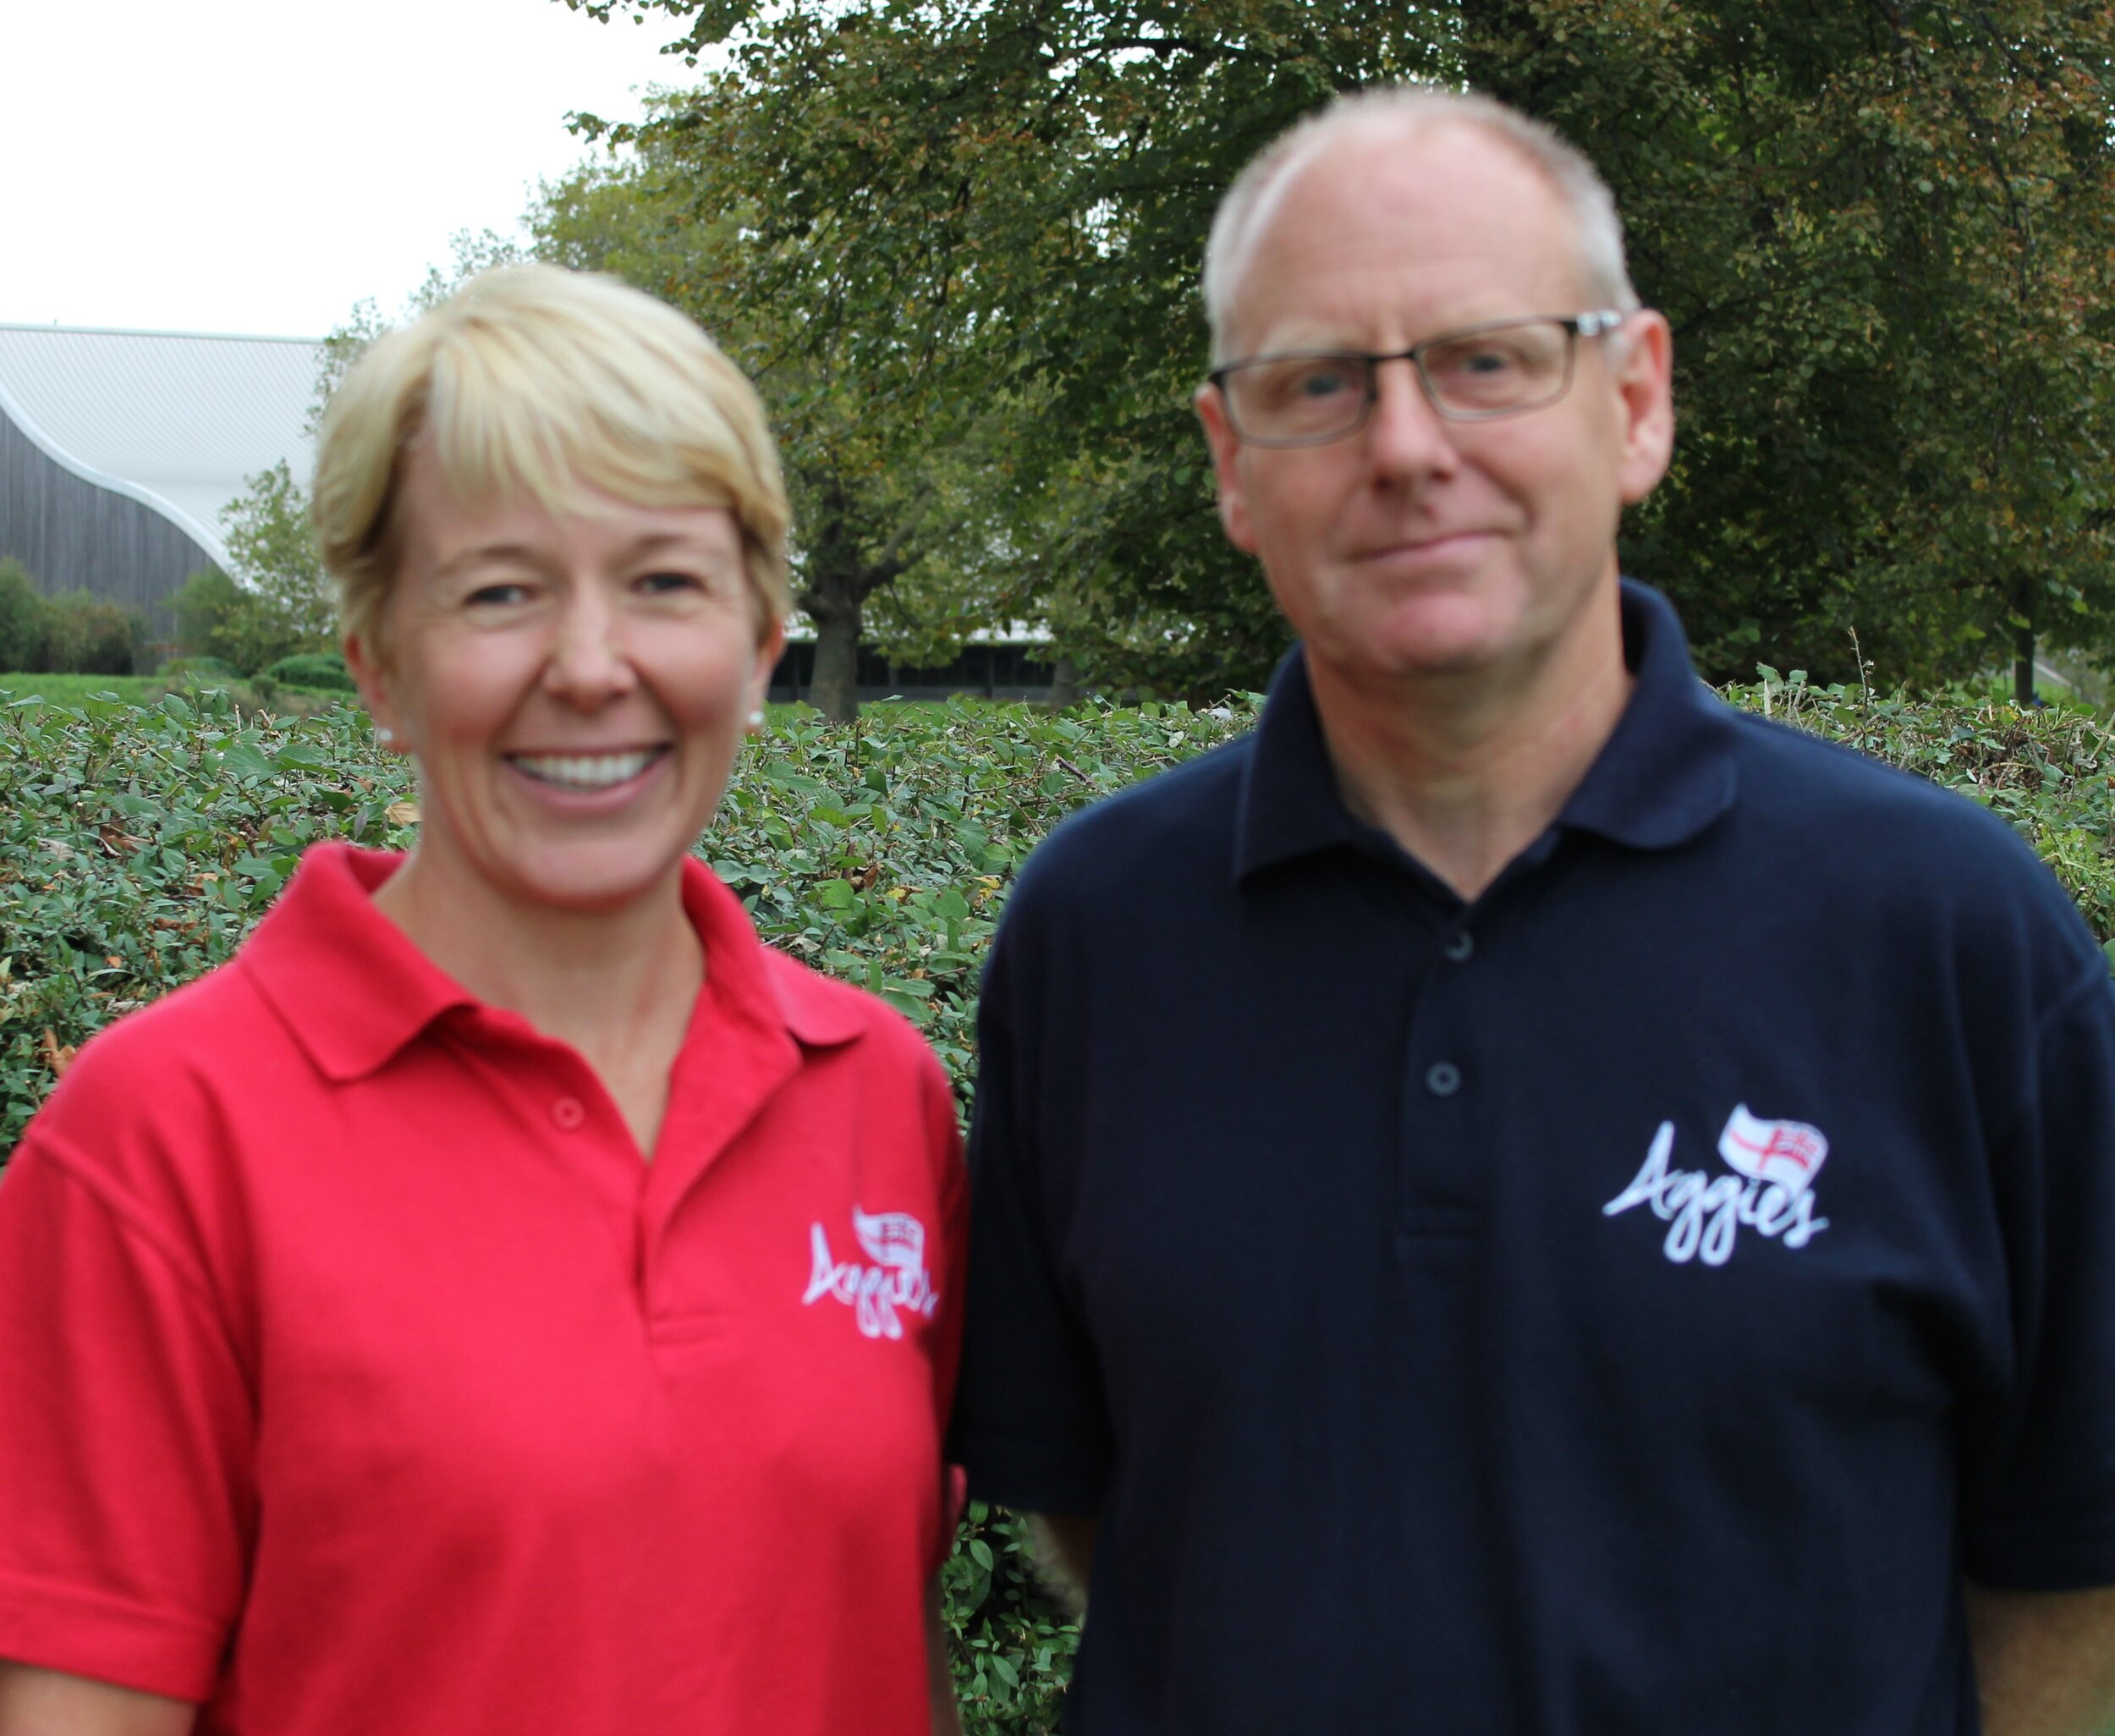 Aggie's Pastoral Worker Alex Watts and Operations Manager John Bazley